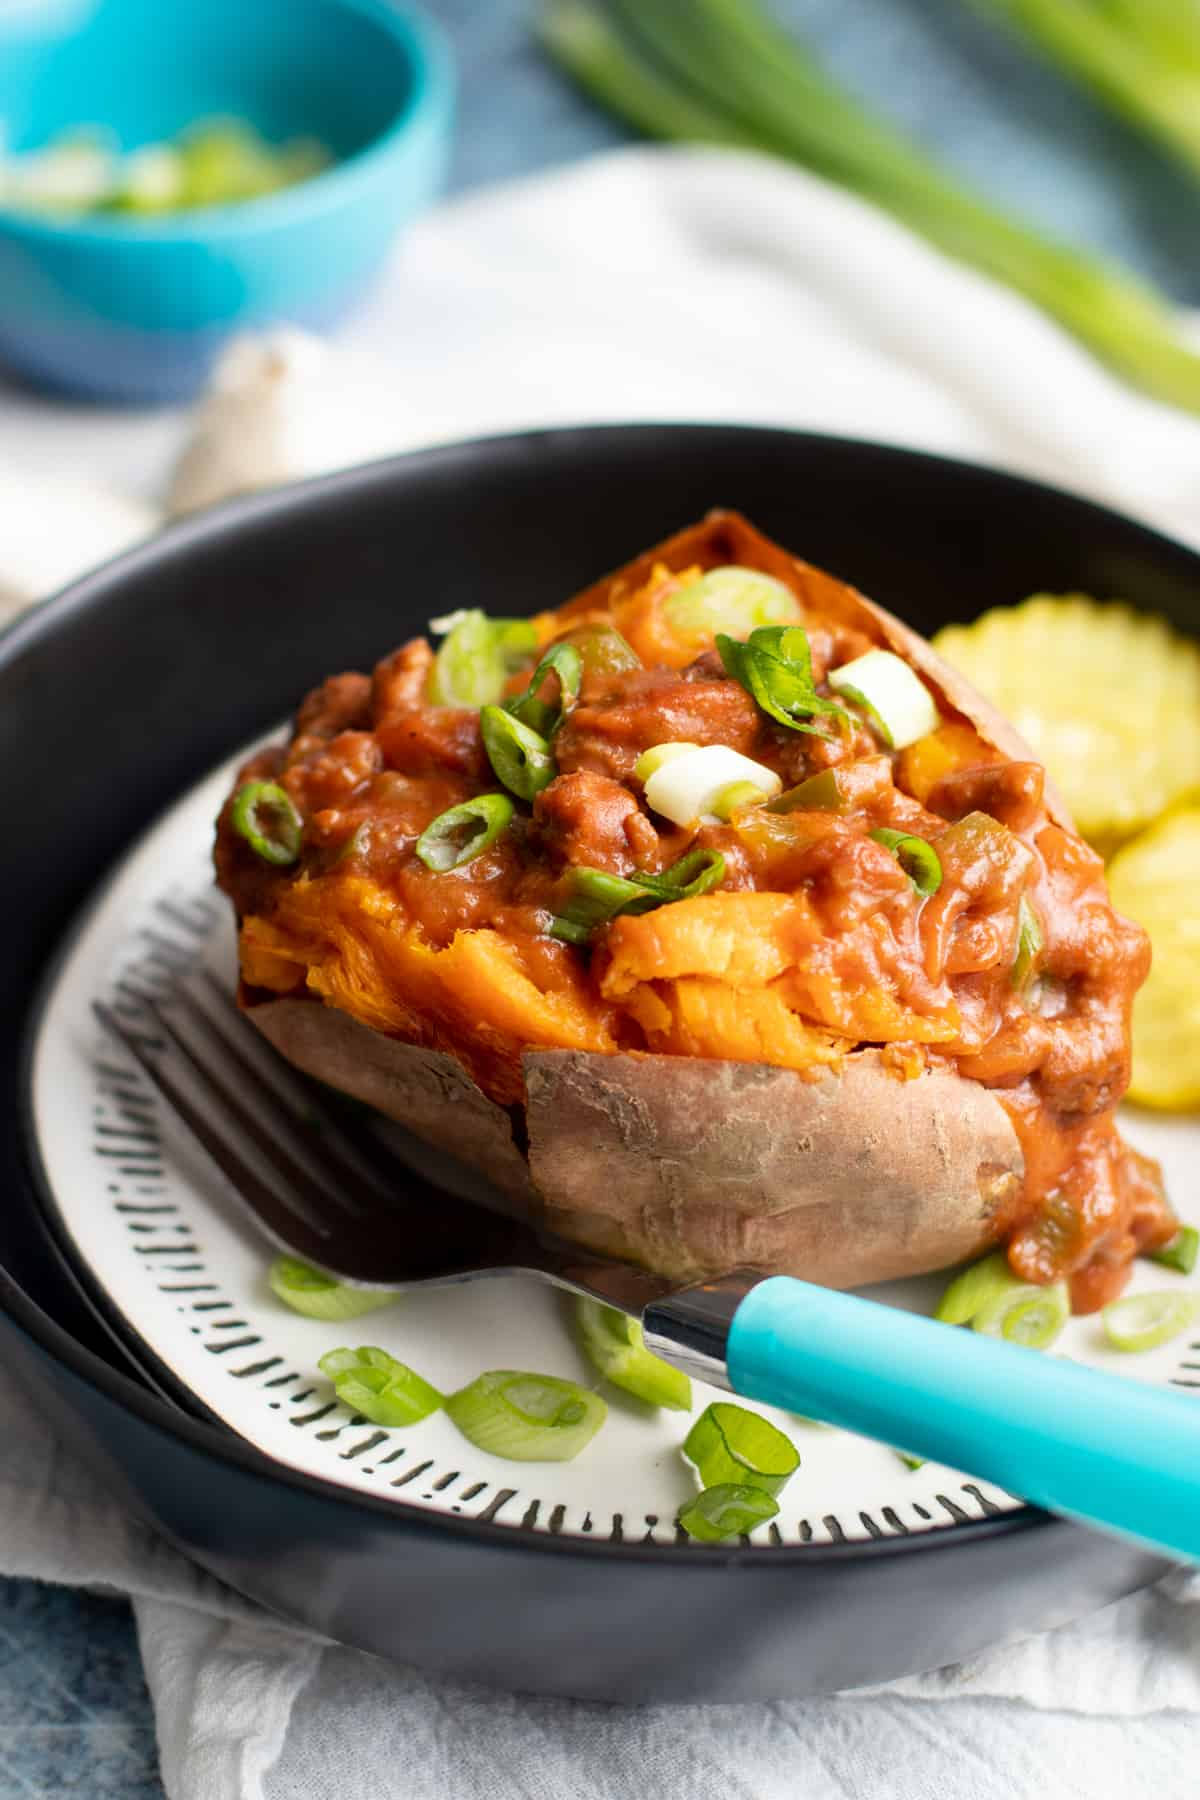 Sweet potato stuffed with a beef sauce on a plate, with a teal-handled fork resting on the side of the plate.